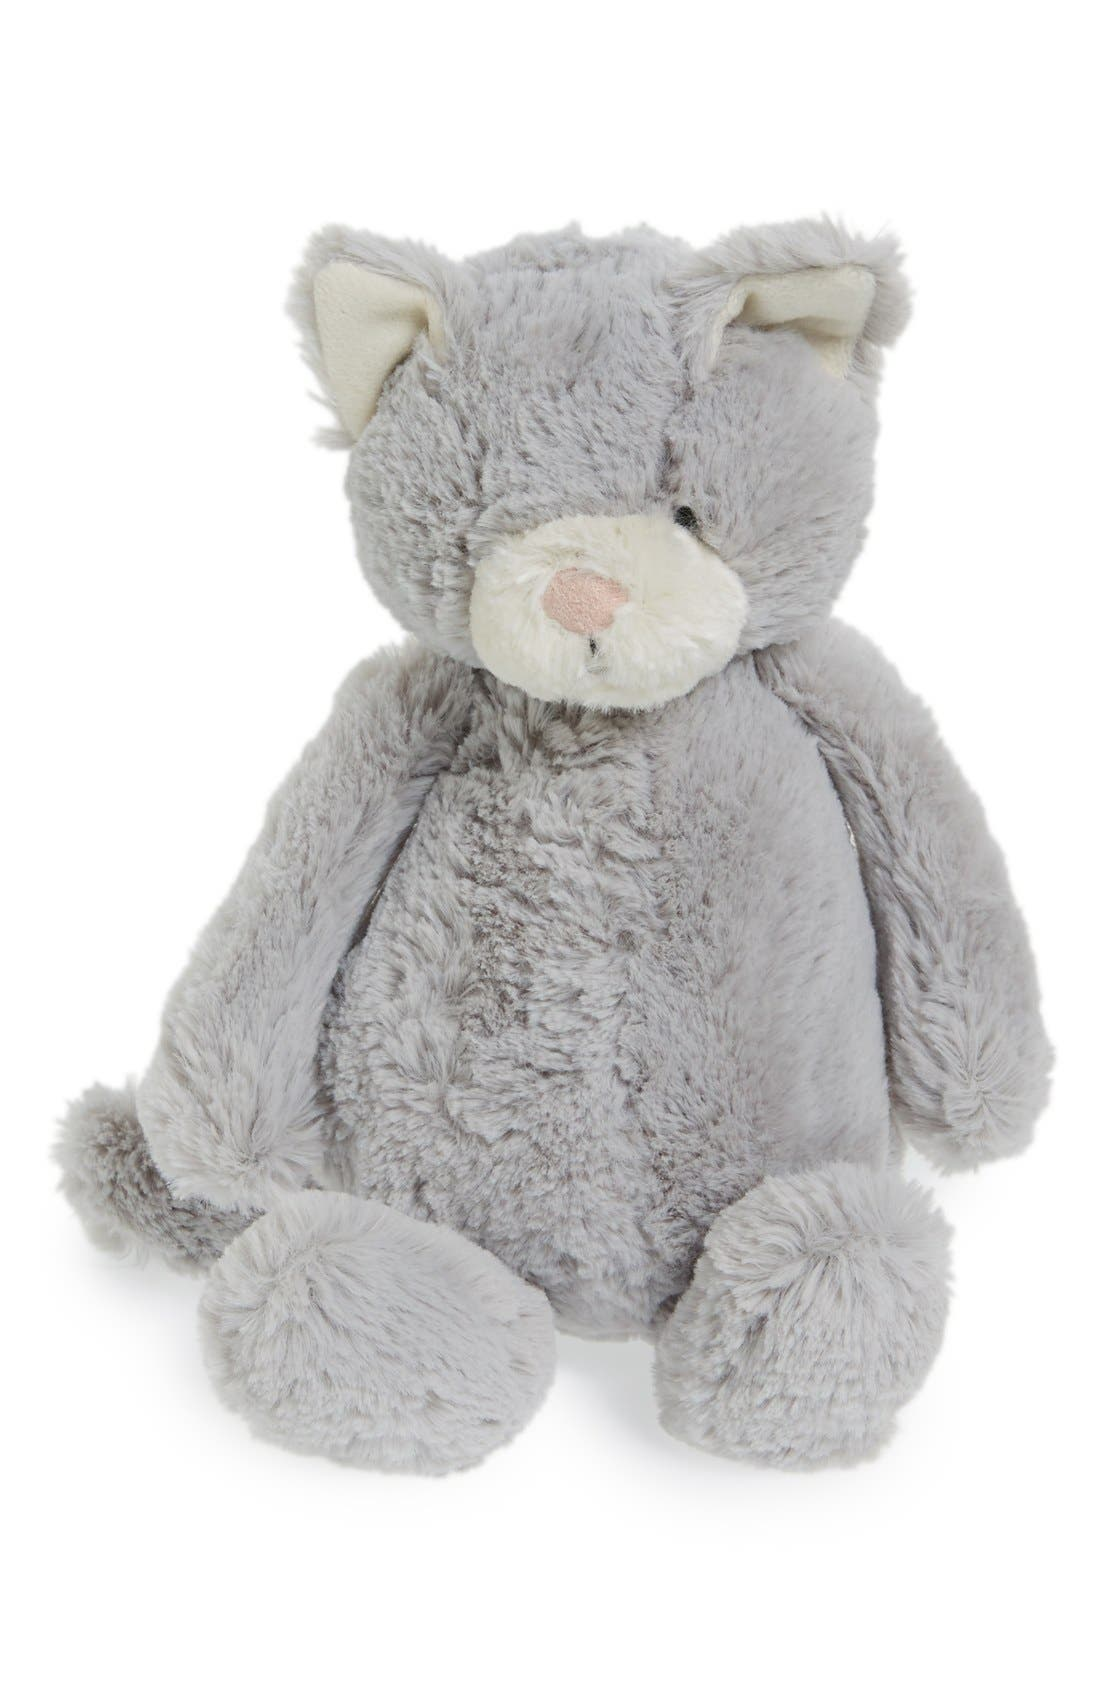 'Medium Bashful Kitty' Stuffed Animal,                             Main thumbnail 1, color,                             GREY/ WHITE